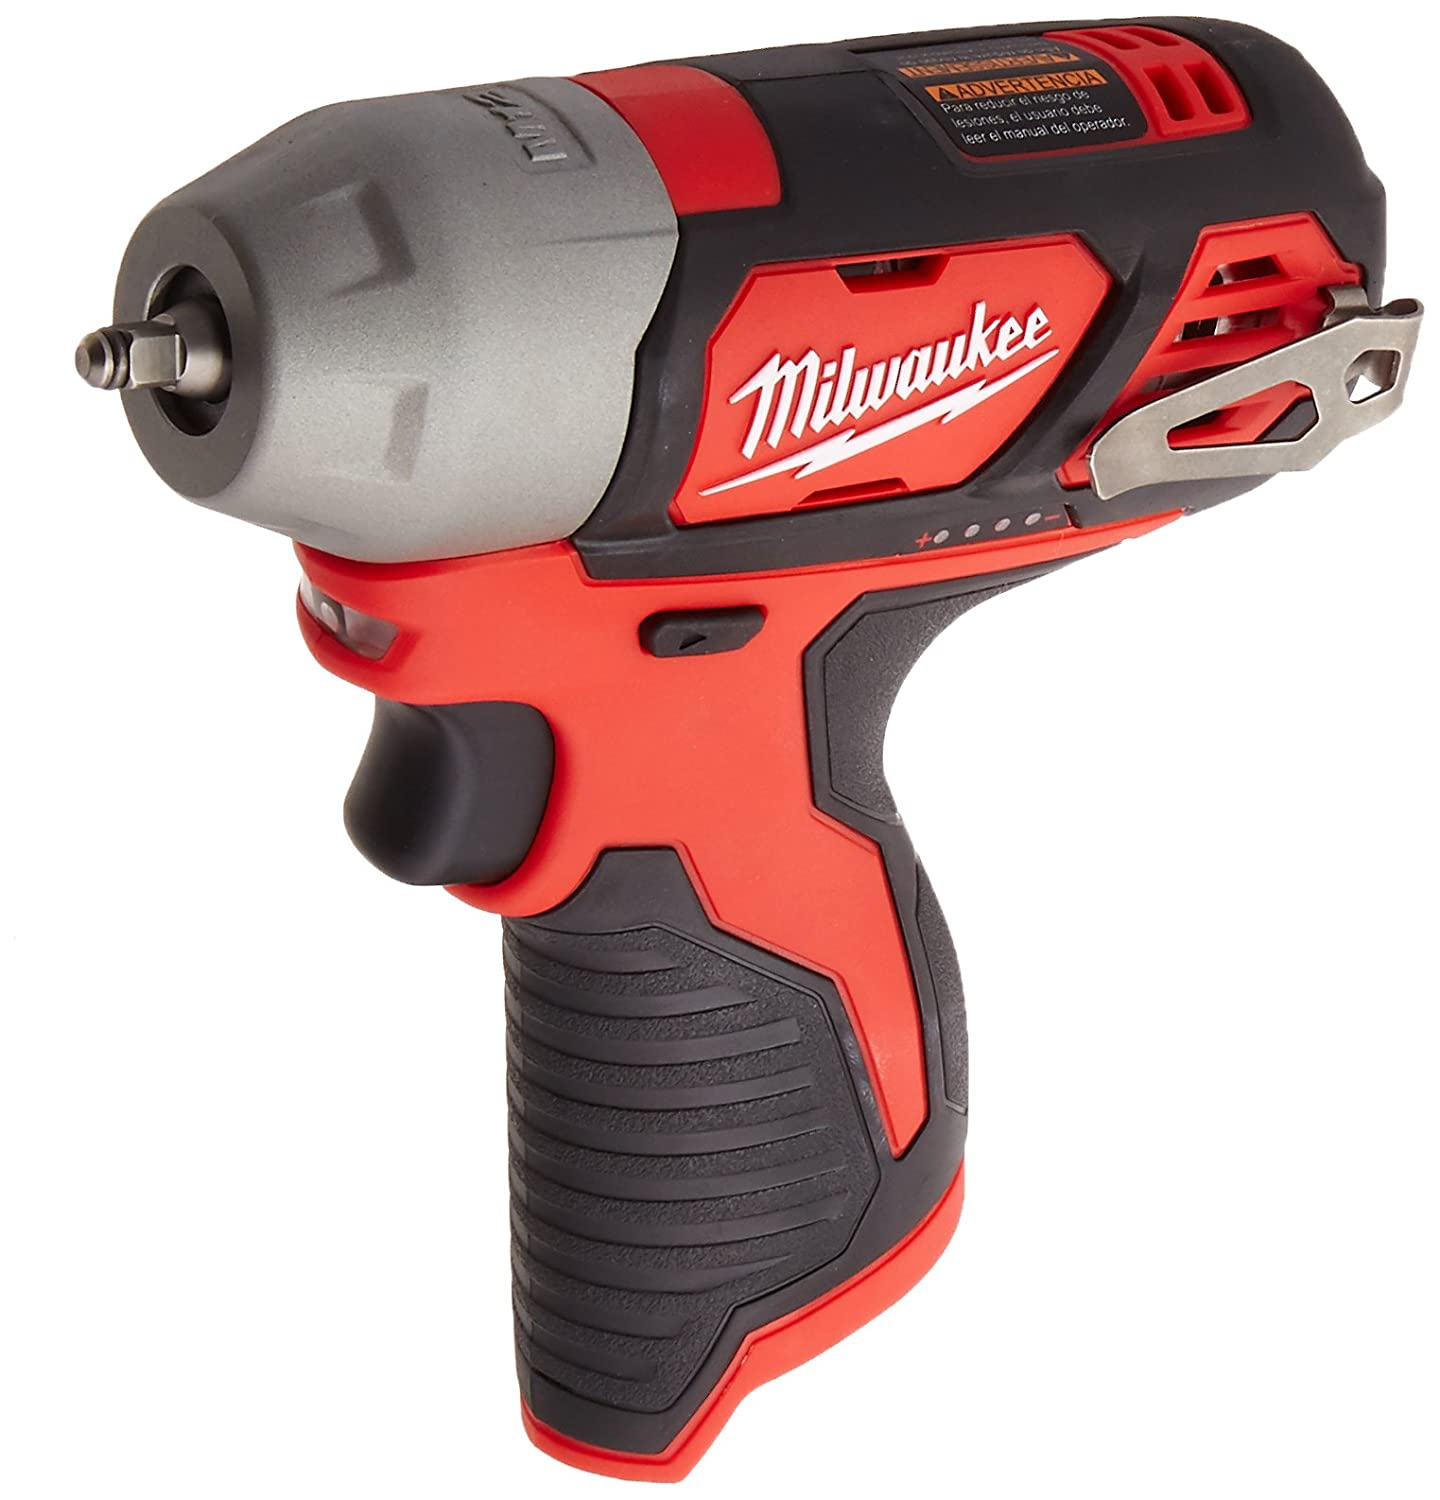 M12 1/4' Impact Wrench-Bare Milwaukee Electric Tools 2461-20